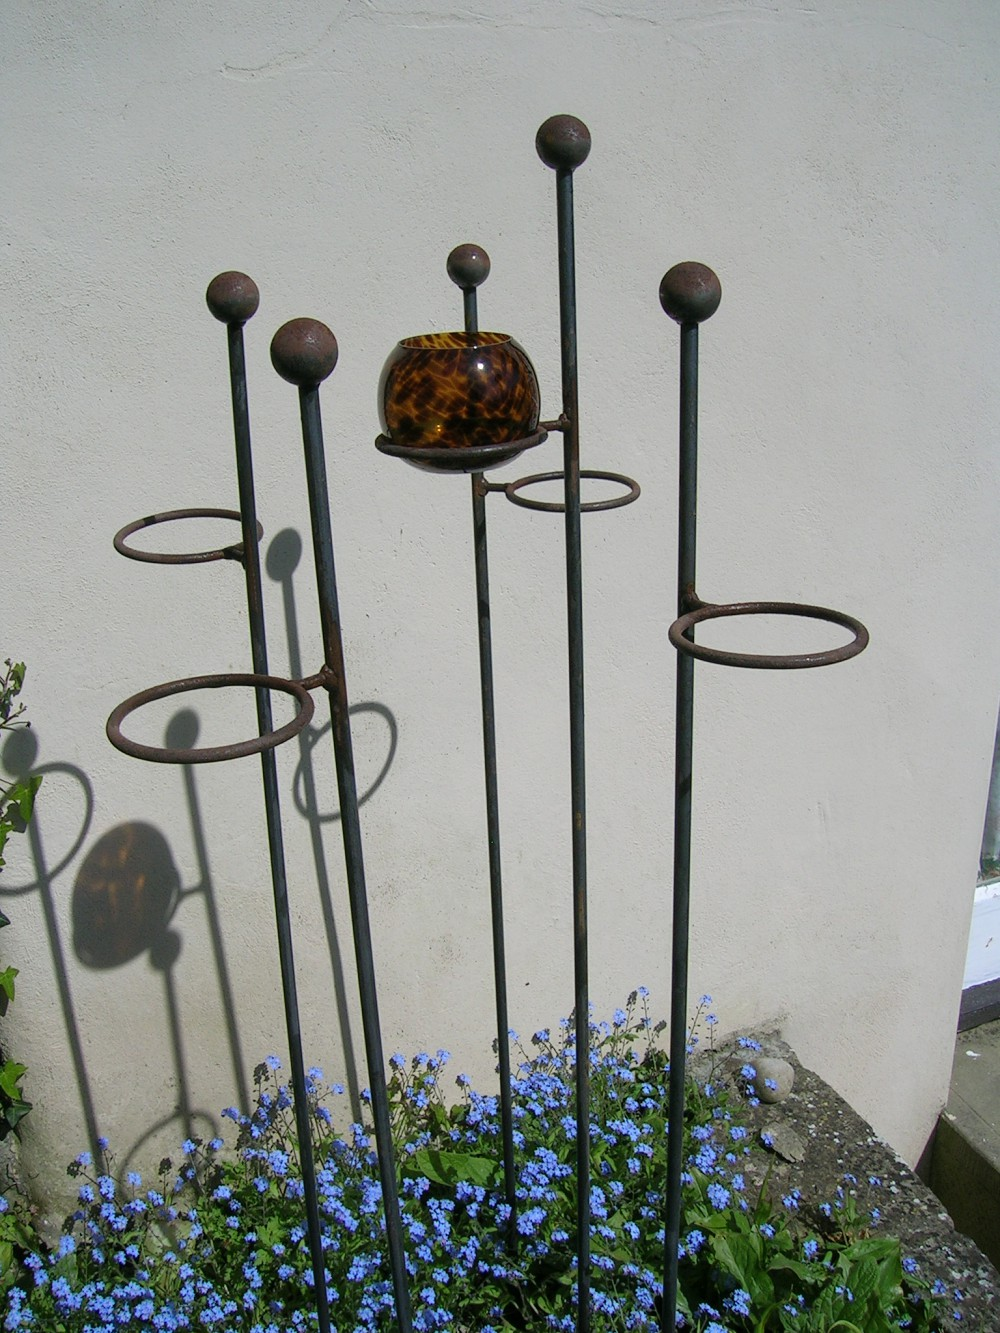 Outdoor candle holders support 4 plants designed to be hammered down into the ground